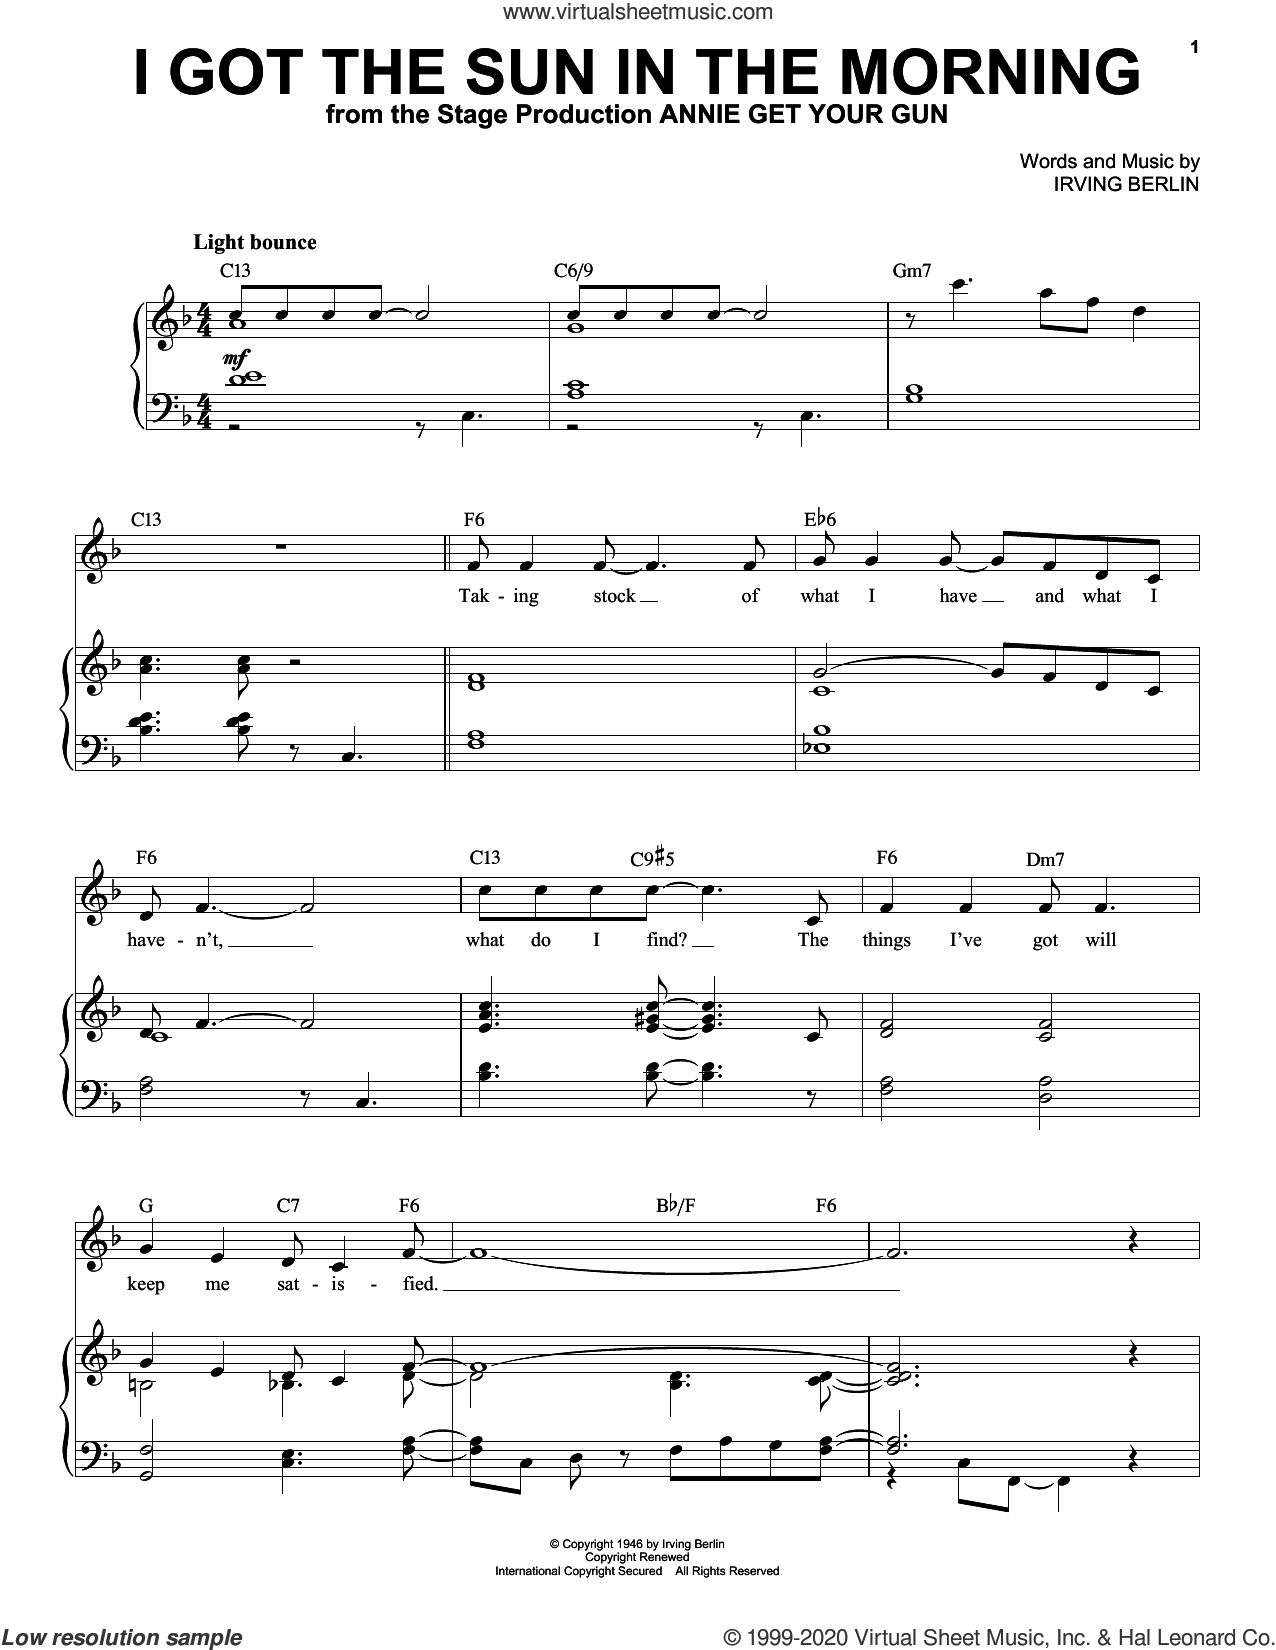 I Got The Sun In The Morning sheet music for voice and piano (High Voice) by Irving Berlin, intermediate skill level